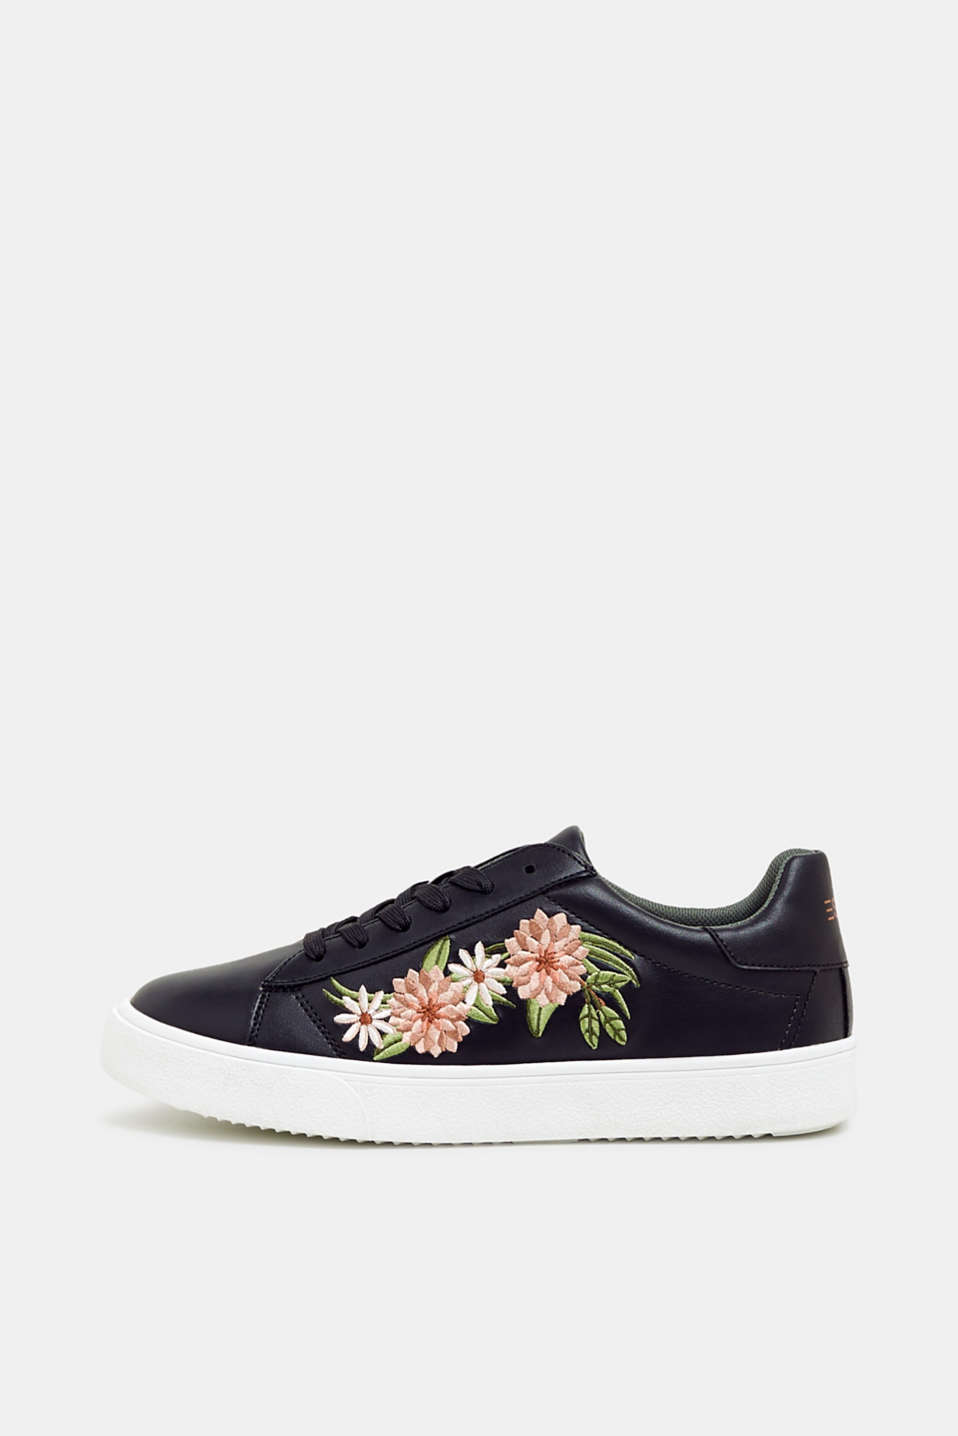 Trainers with floral embroidery, in faux leather